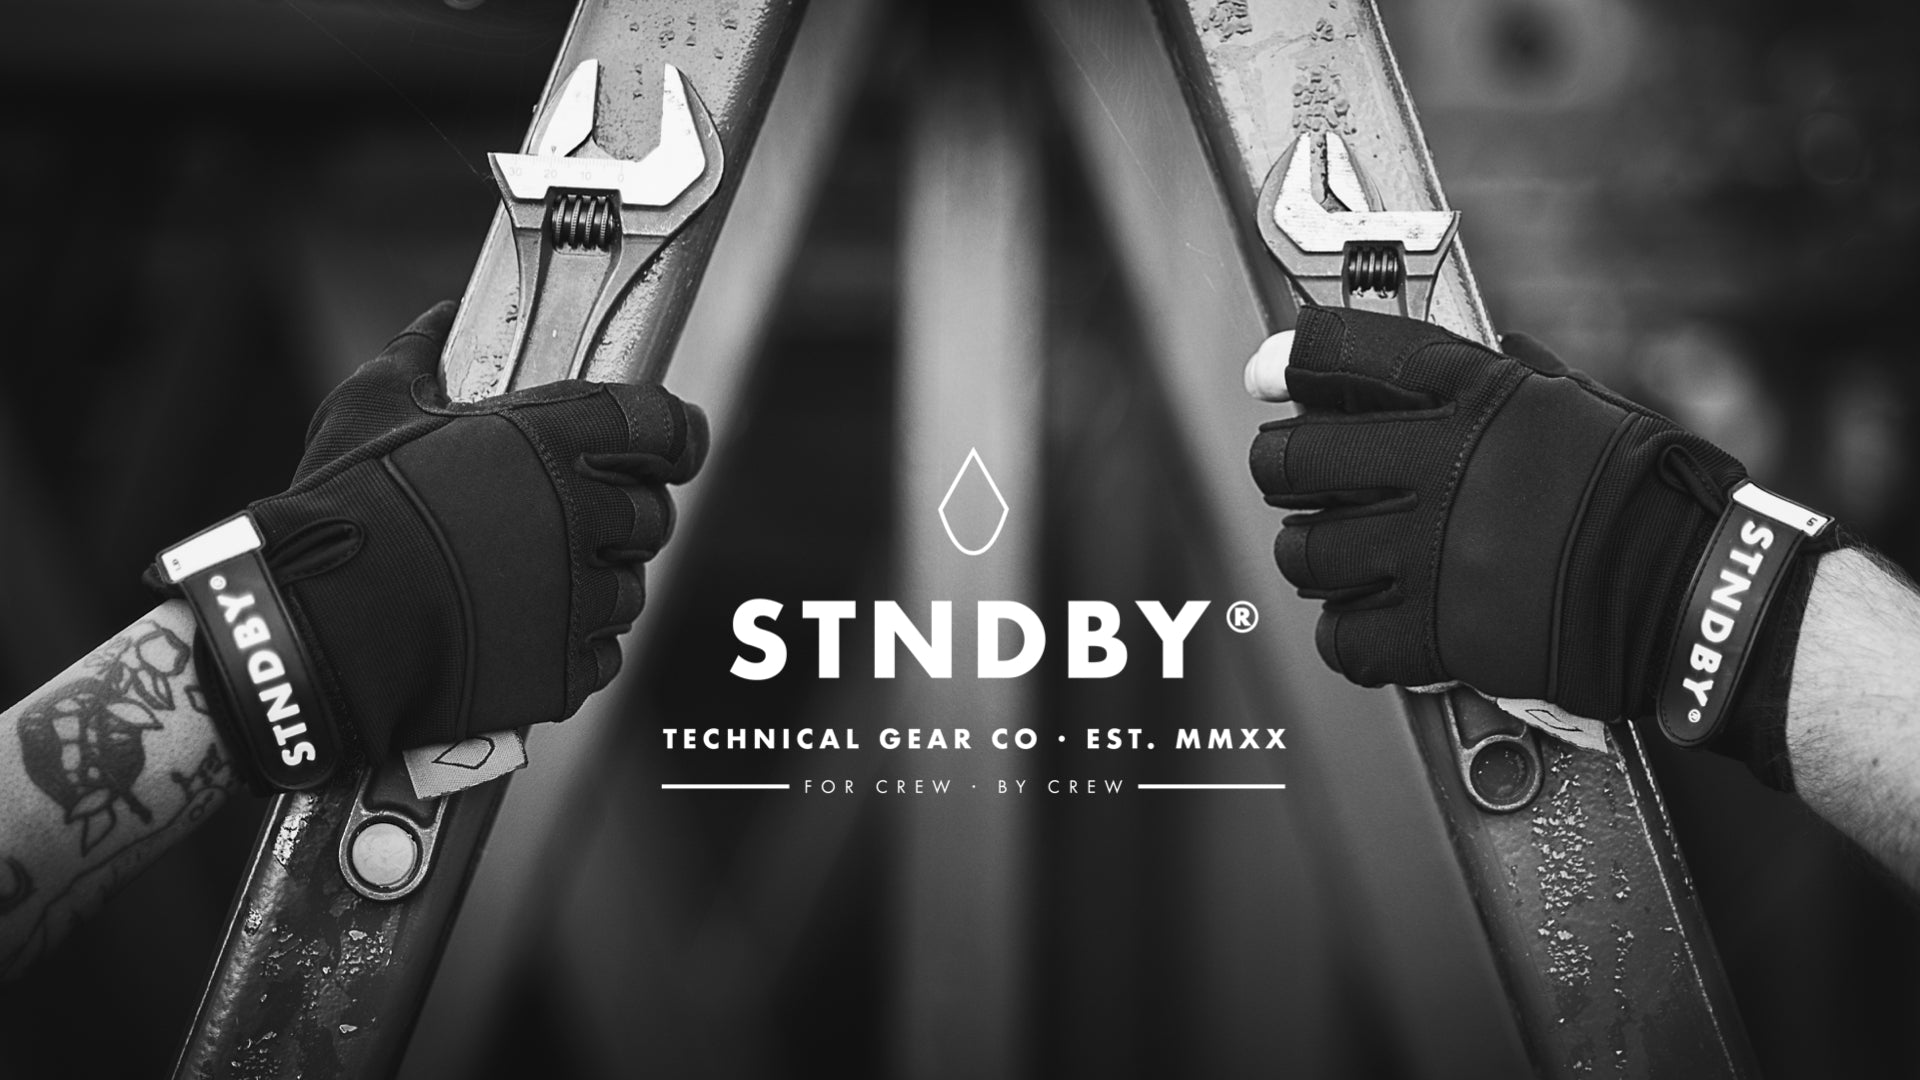 xx STNDBY TECHNICAL GEAR Co - GIFT CARD xx